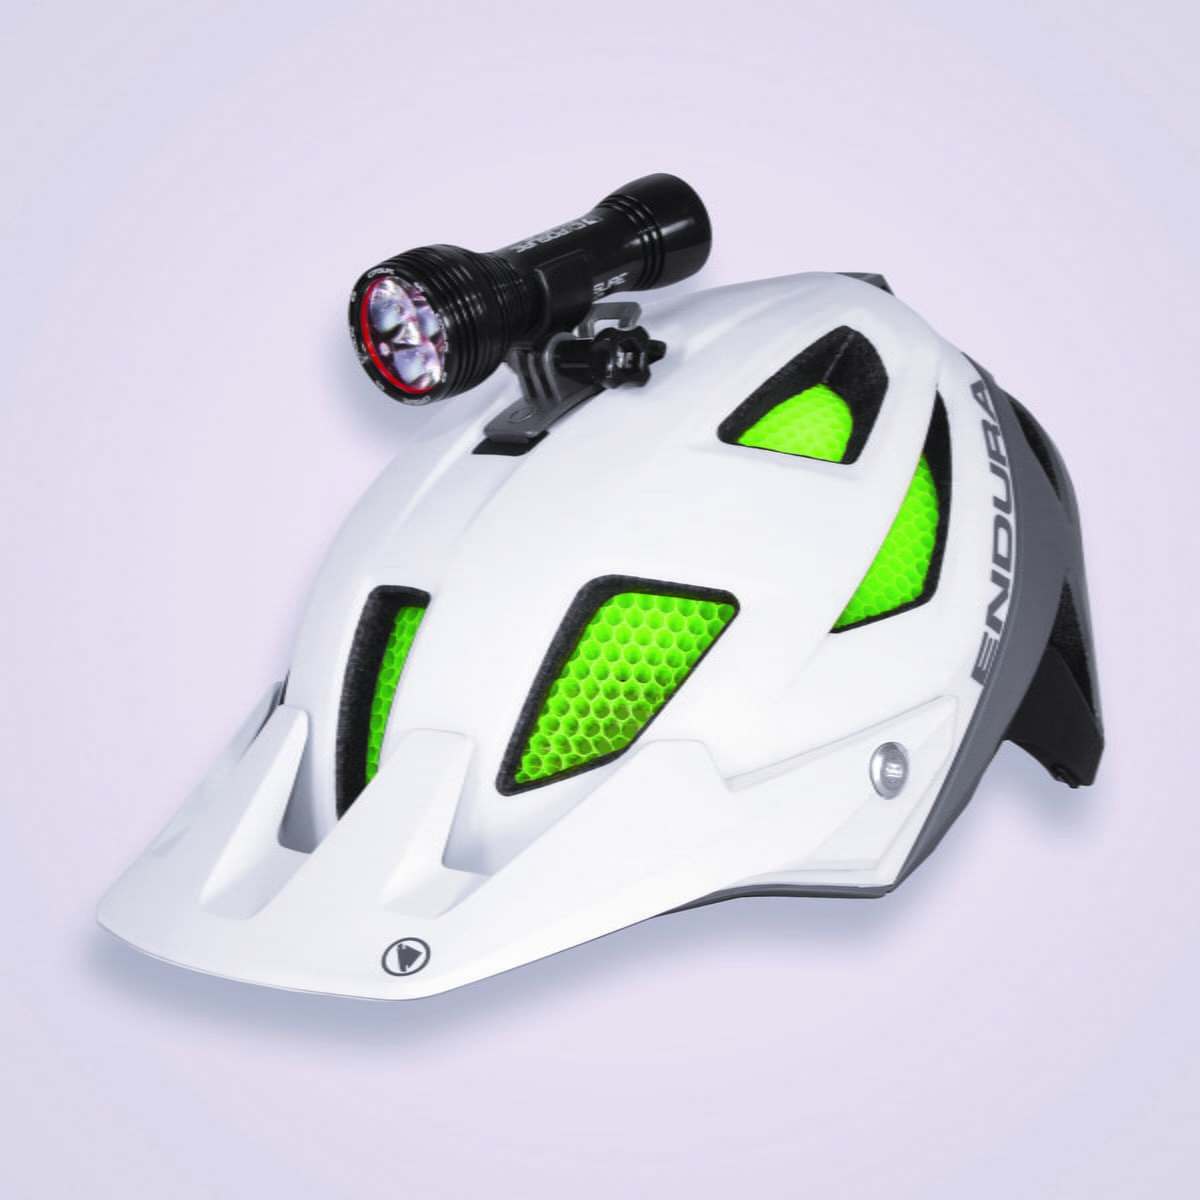 MT500 Helmet Accessory Mount with Light